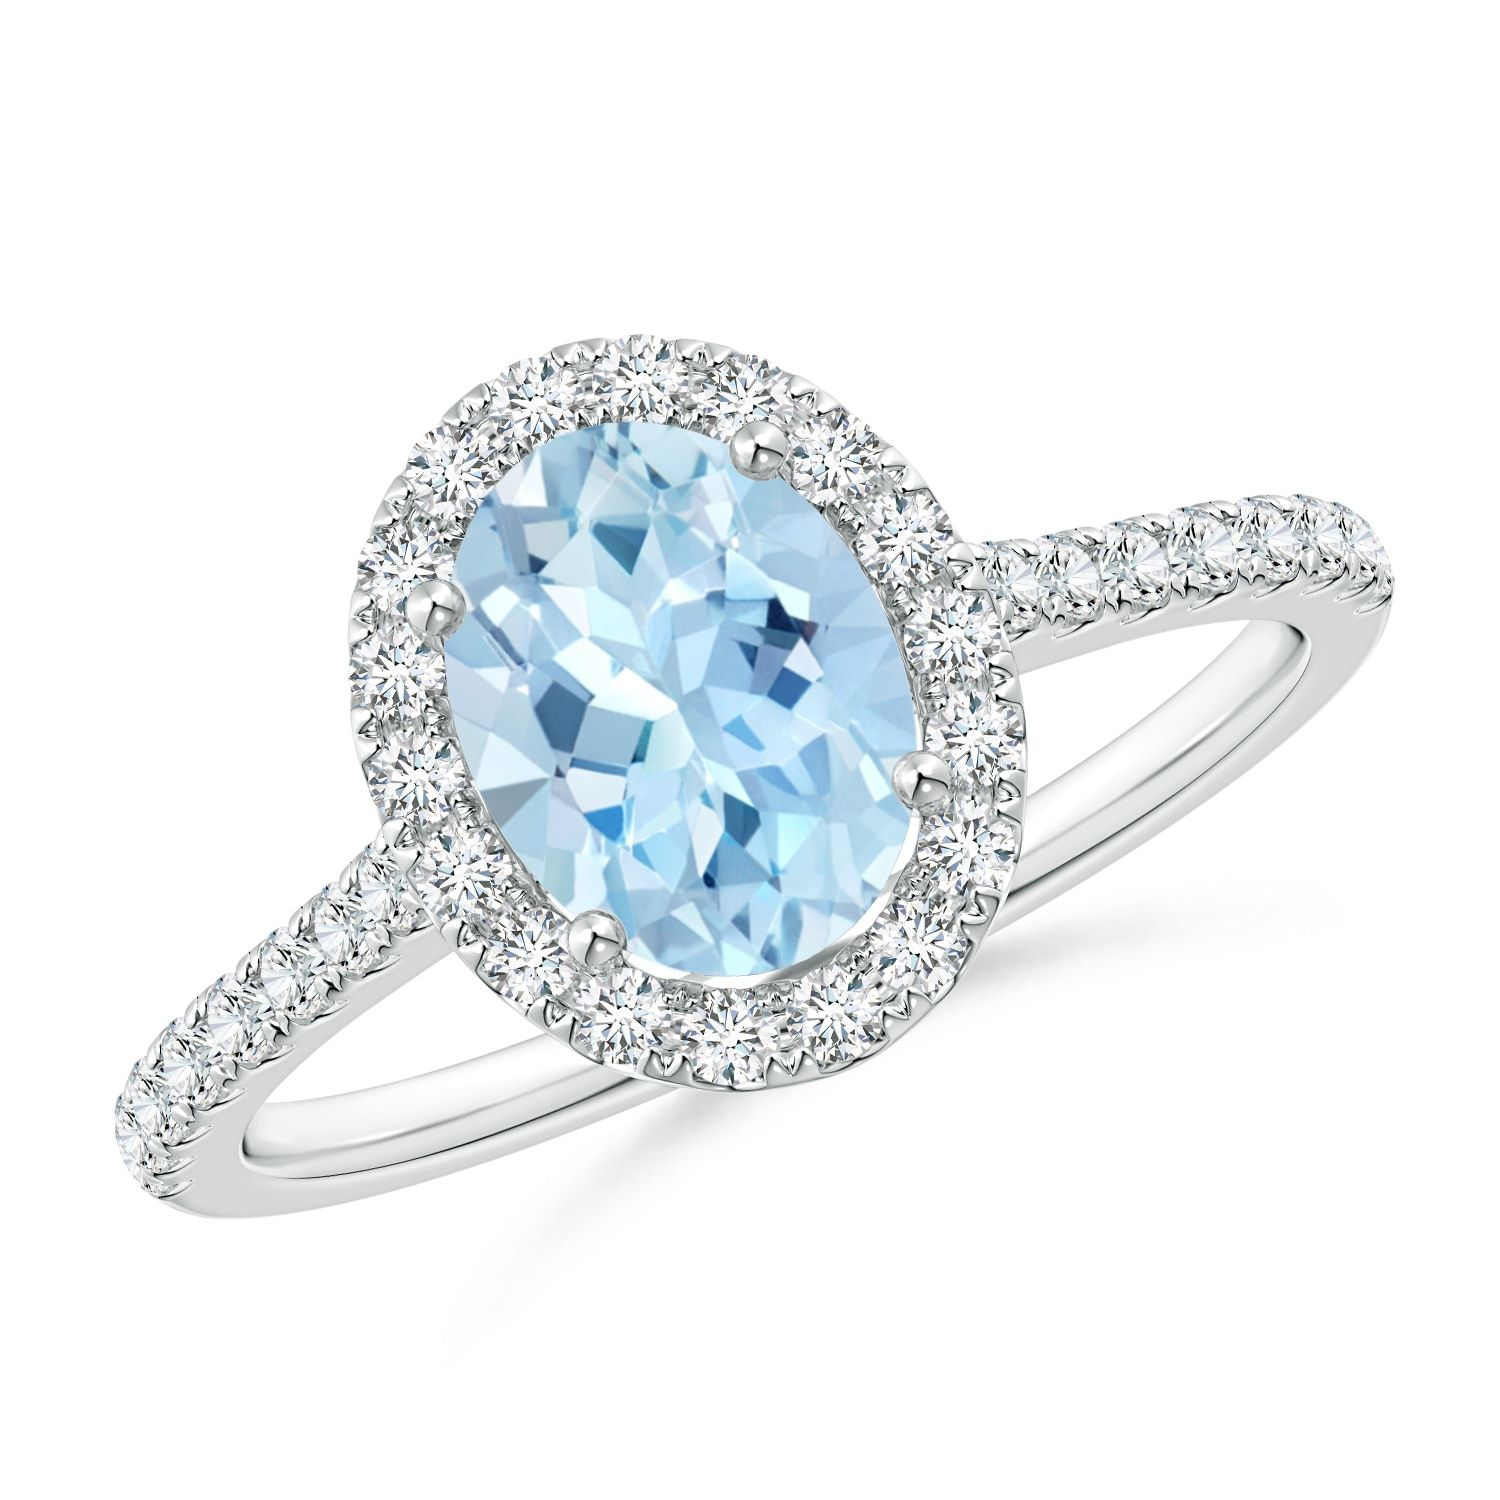 1.34tcw Oval Natural Aquamarine Halo Ring with Diamond Accents Gold/Platinum